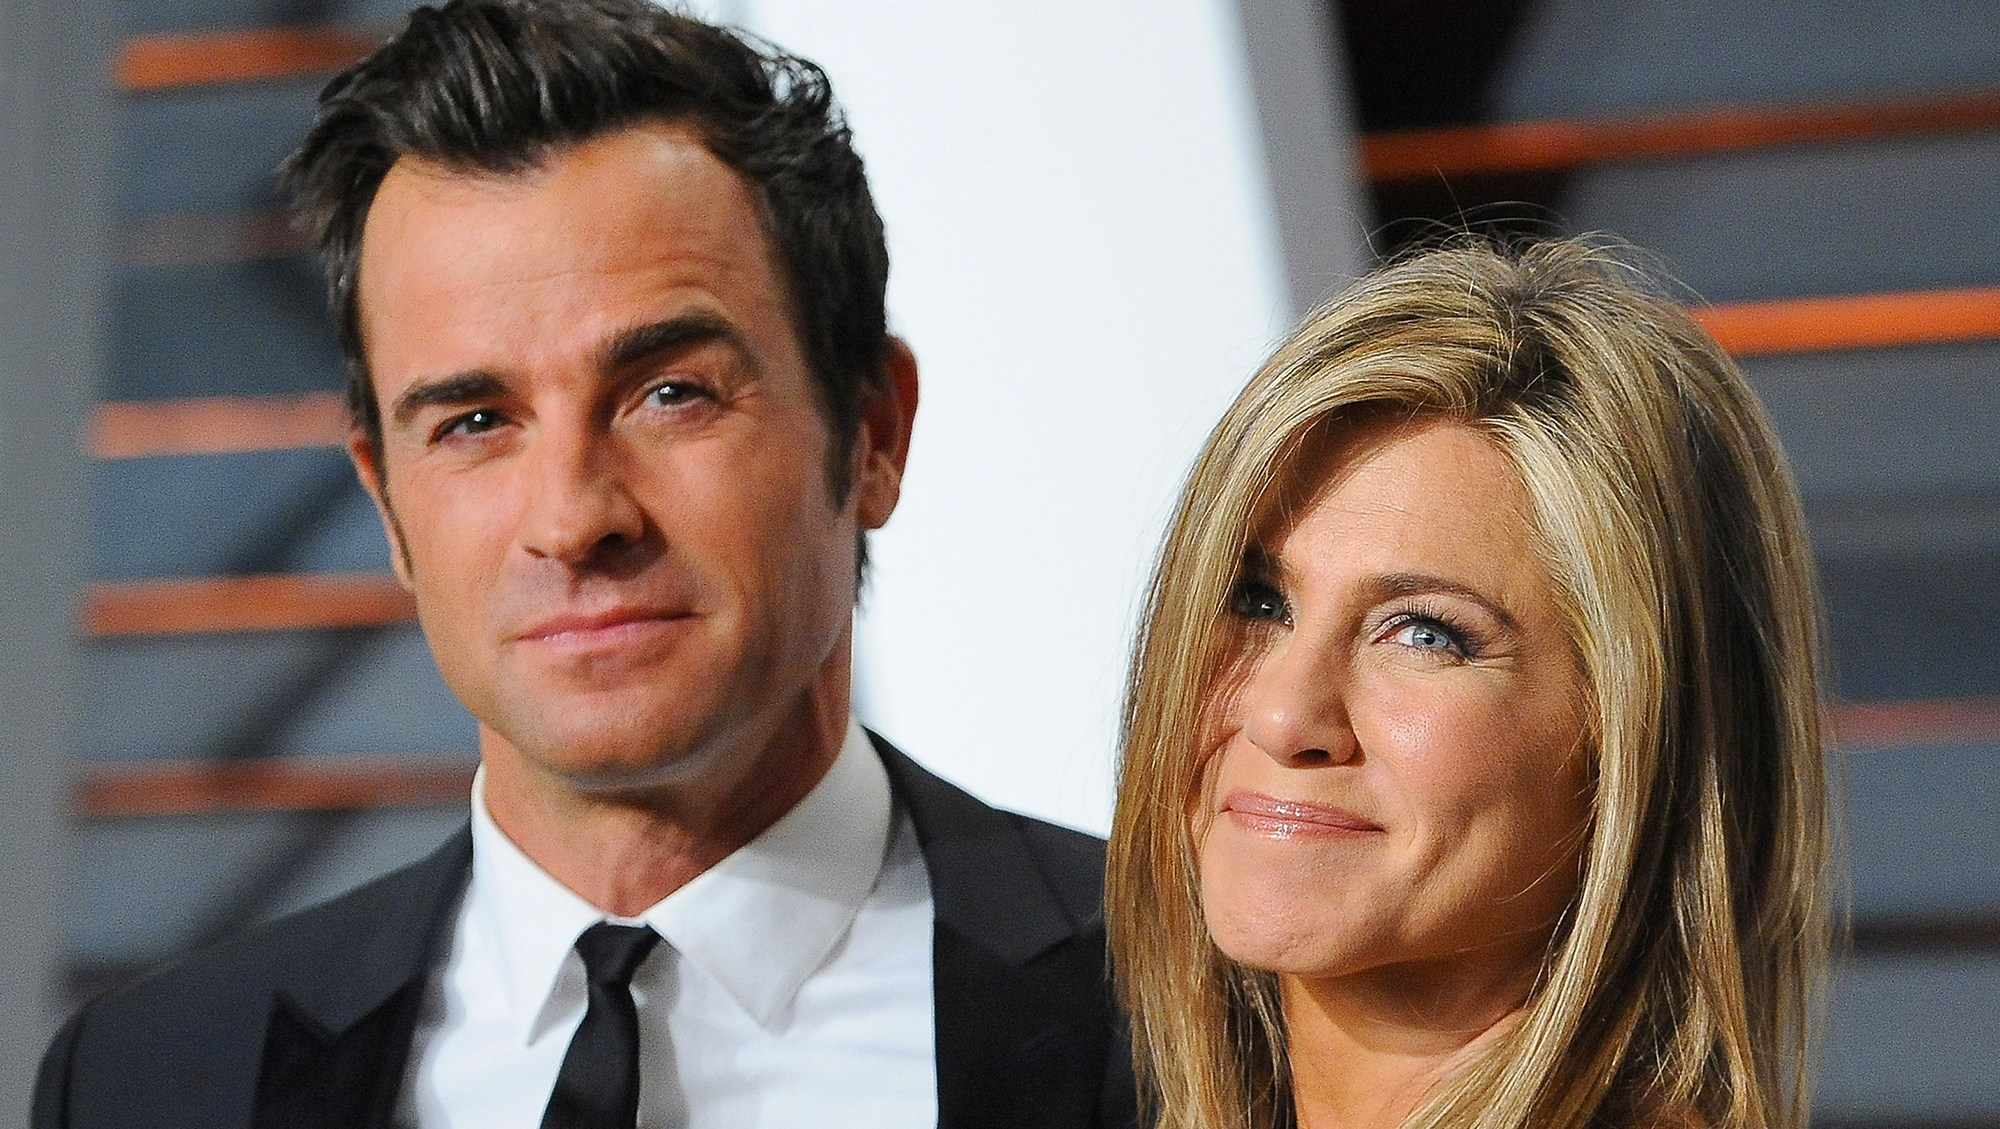 Justin Theroux and actress Jennifer Aniston